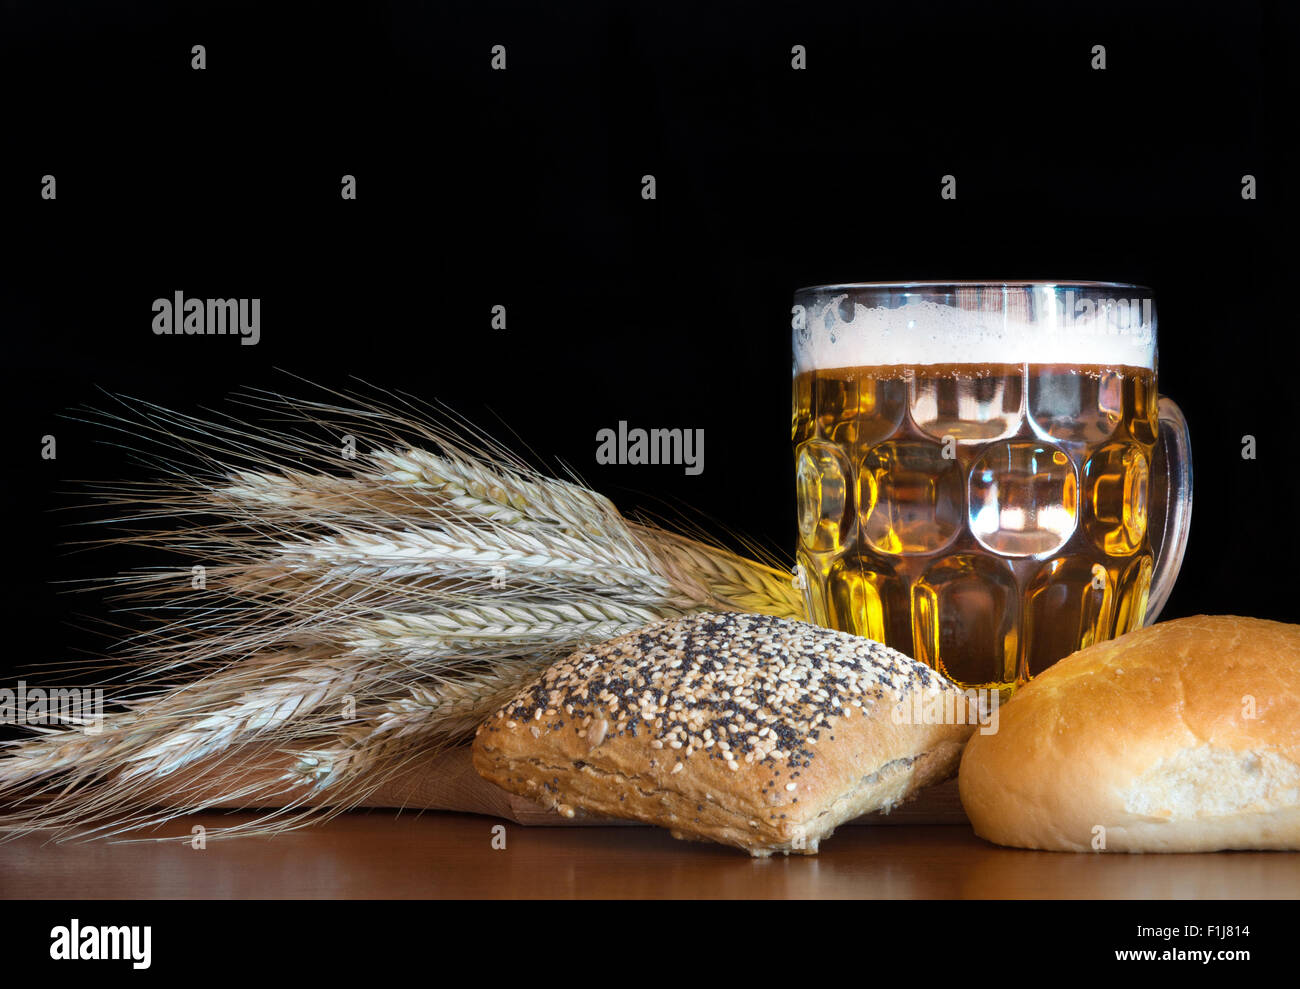 Pint of beer with wheat on black background. - Stock Image